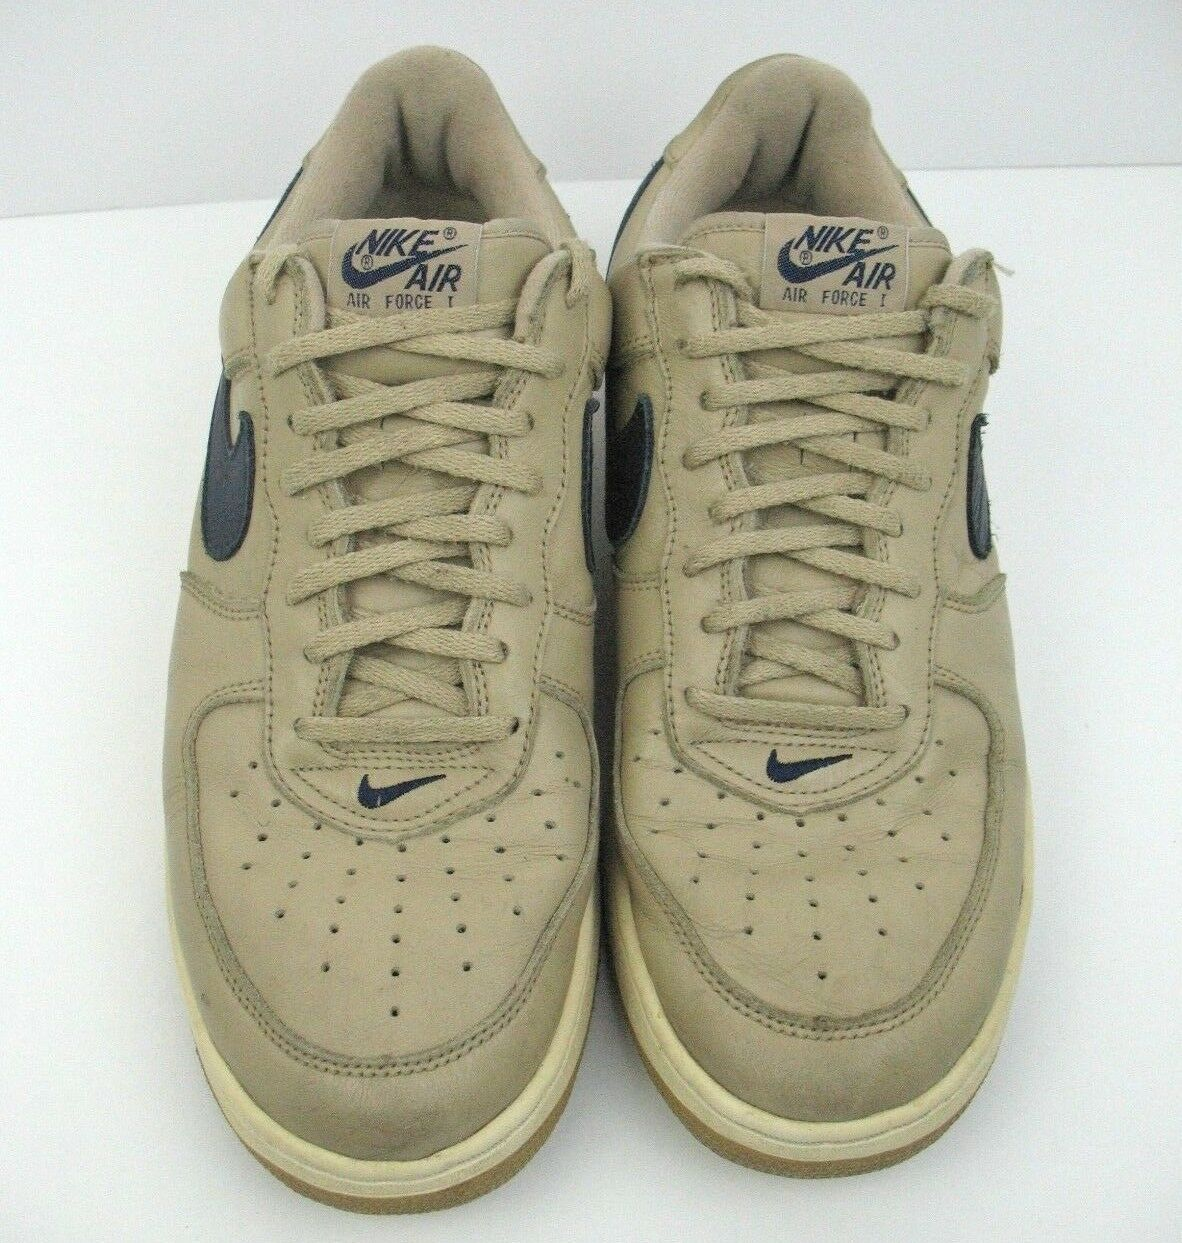 NIKE AIR FORCE 1 1 1 Mens Size 12 Mushroom Navy bluee Linen Low Top 1997 630033 241 b42d27